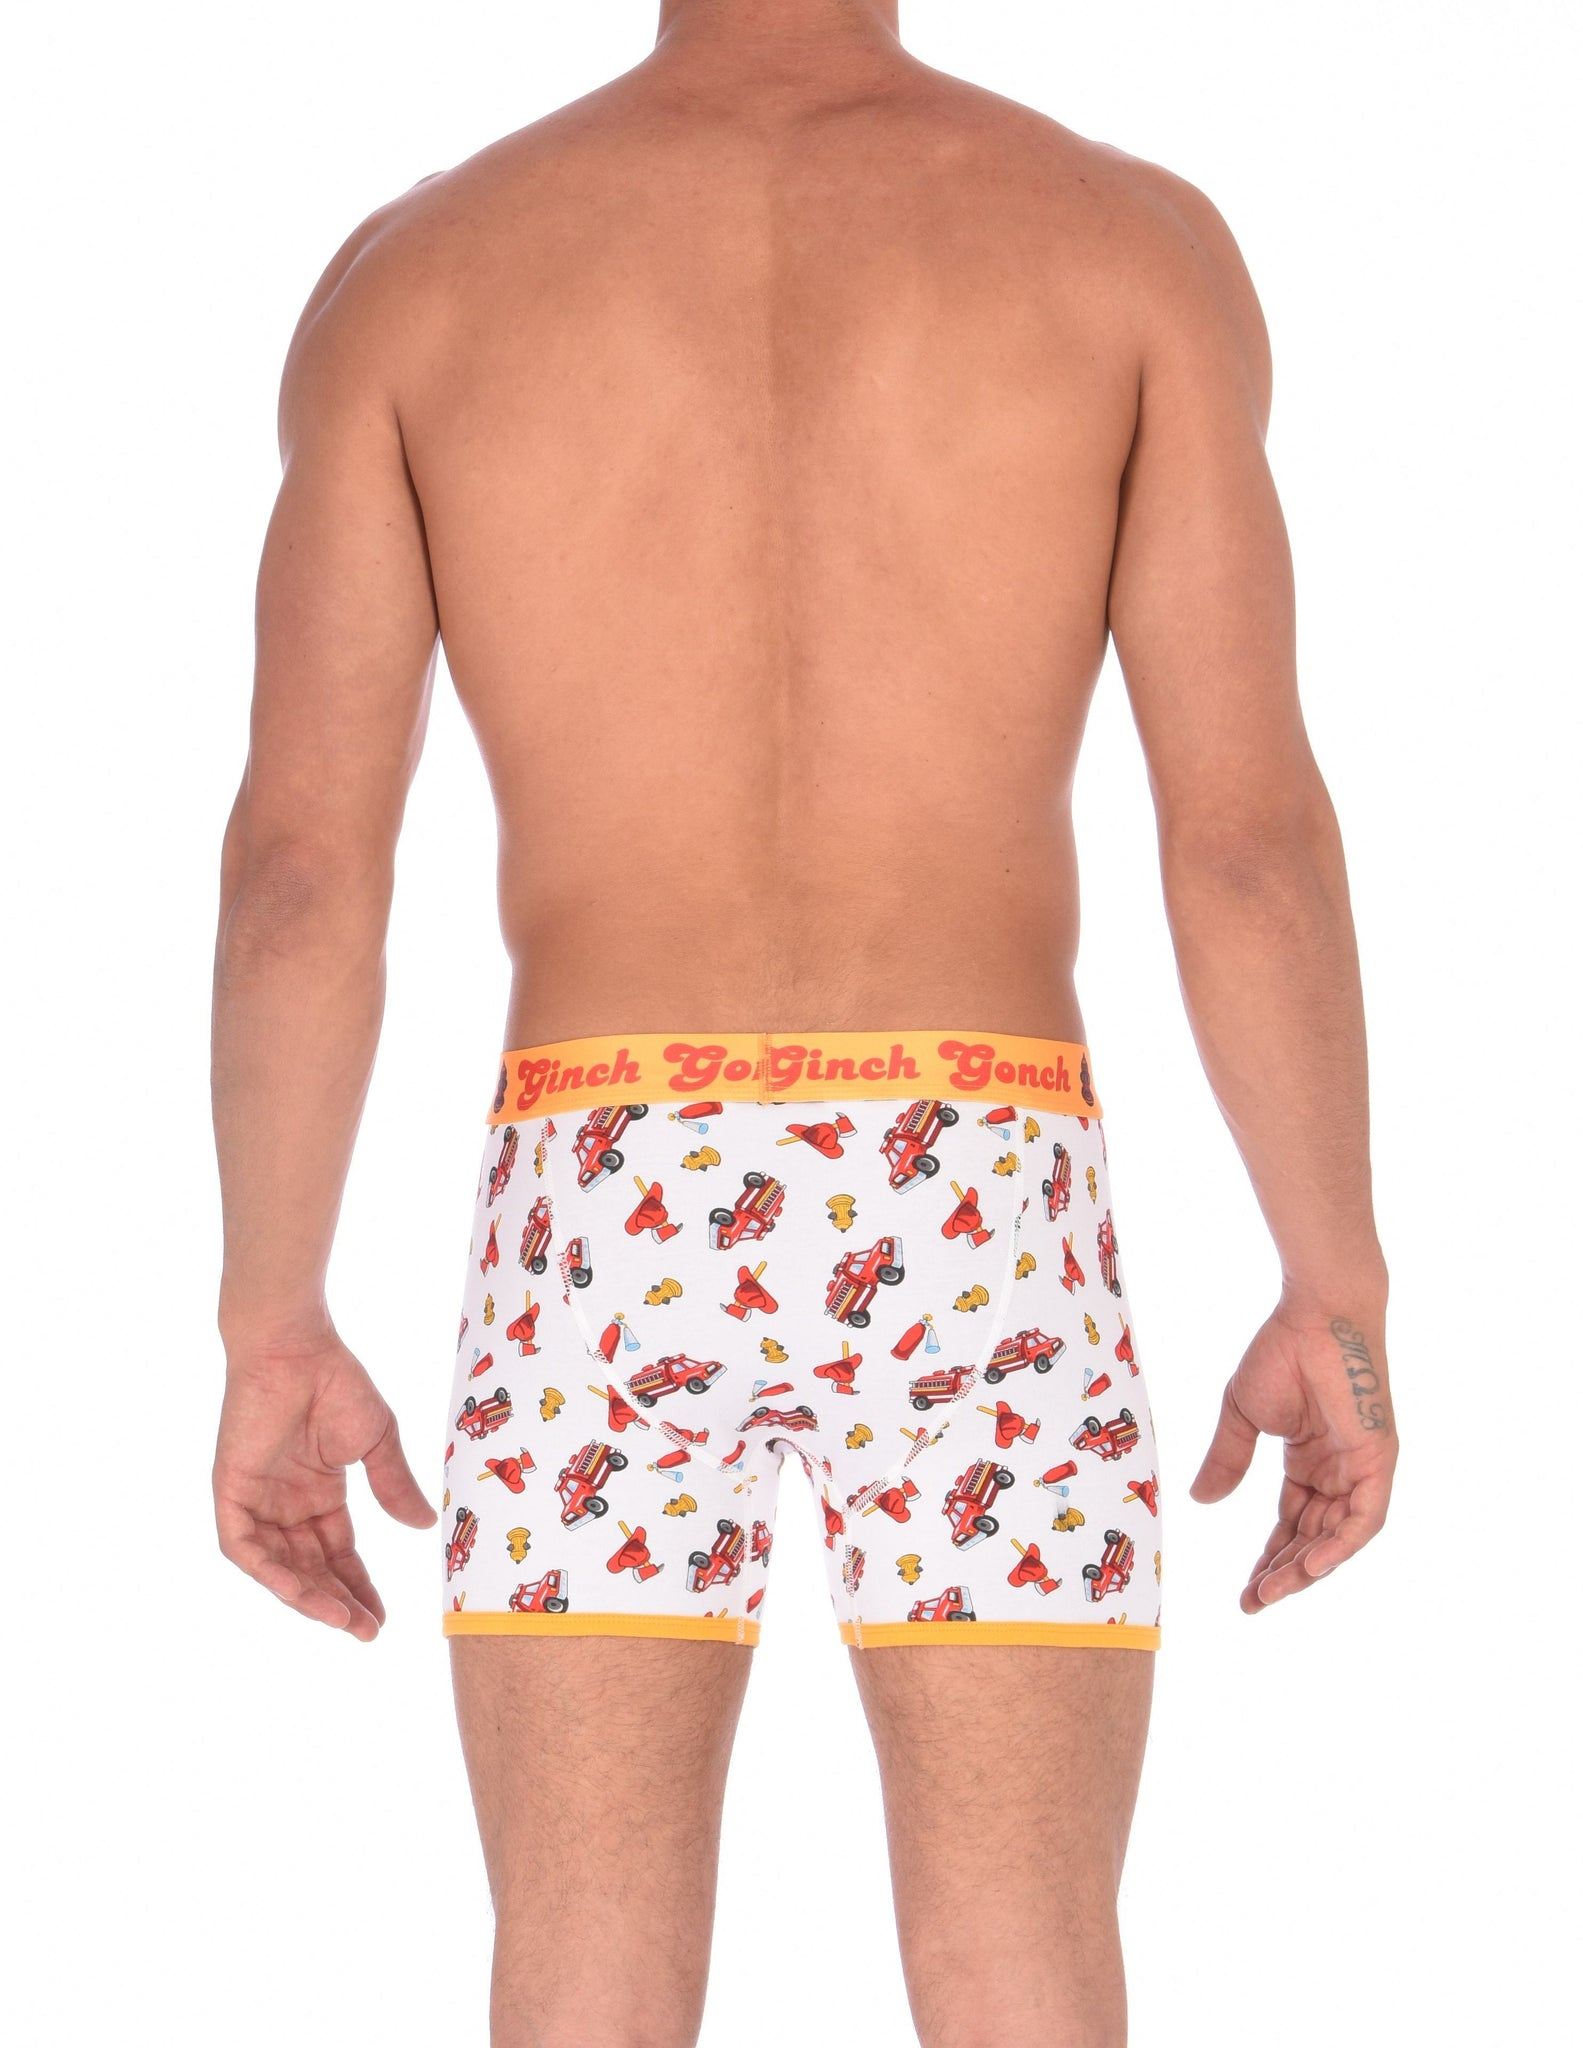 Boxer Brief Subscription